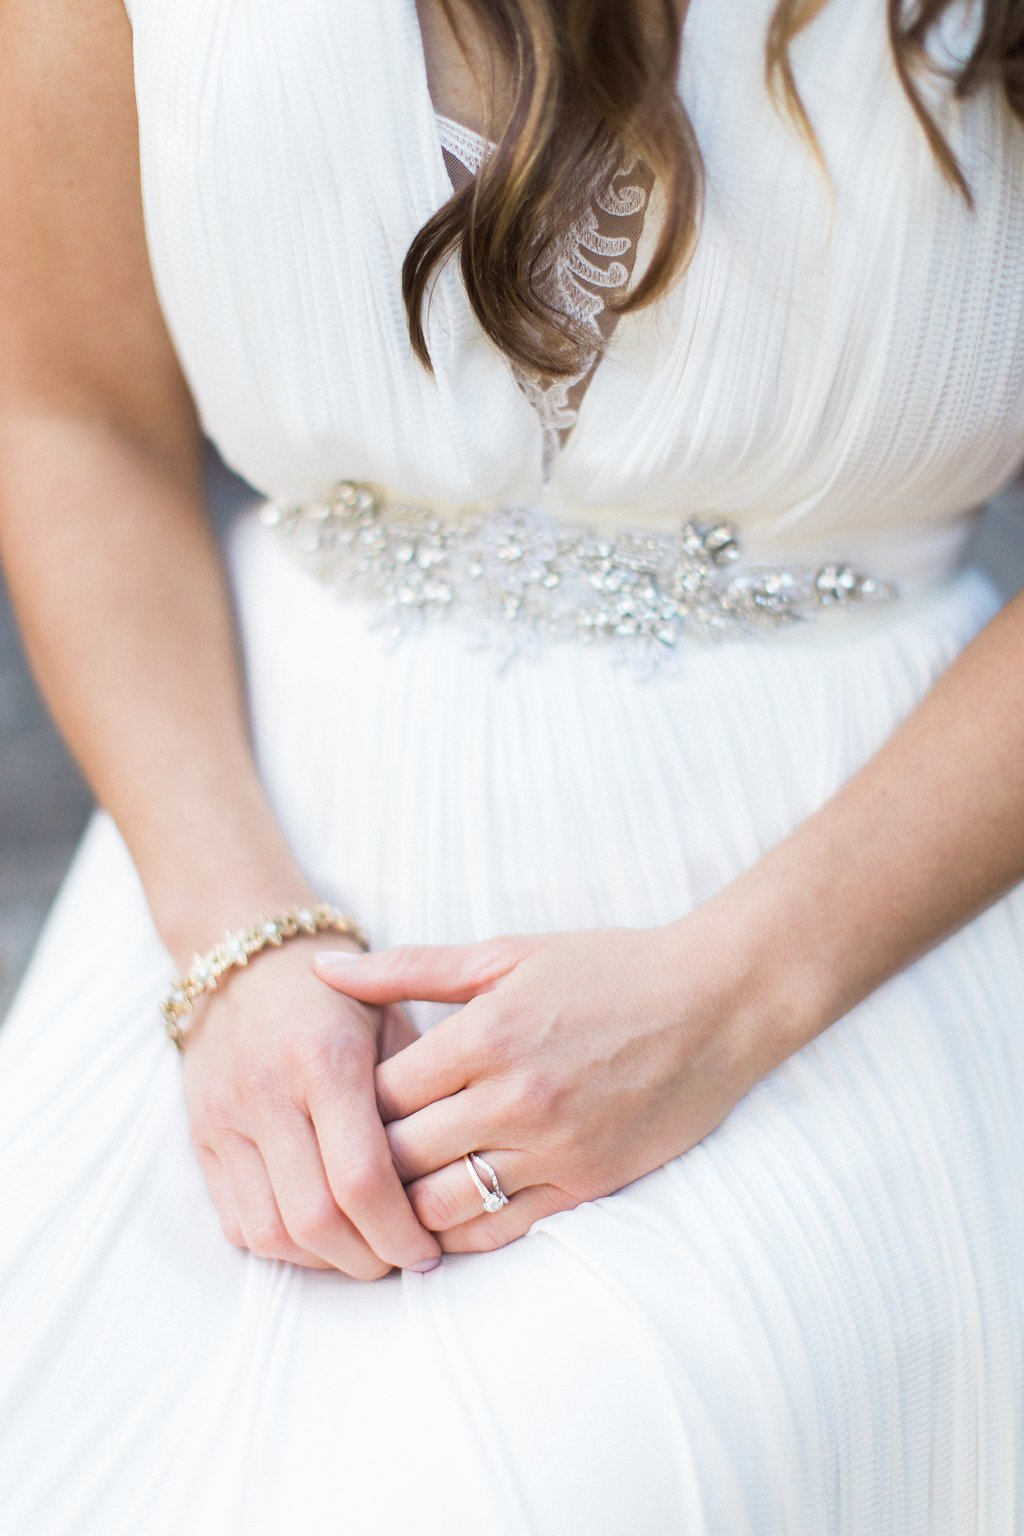 Close up of bride's hands resting on her lap showing her engagement ring